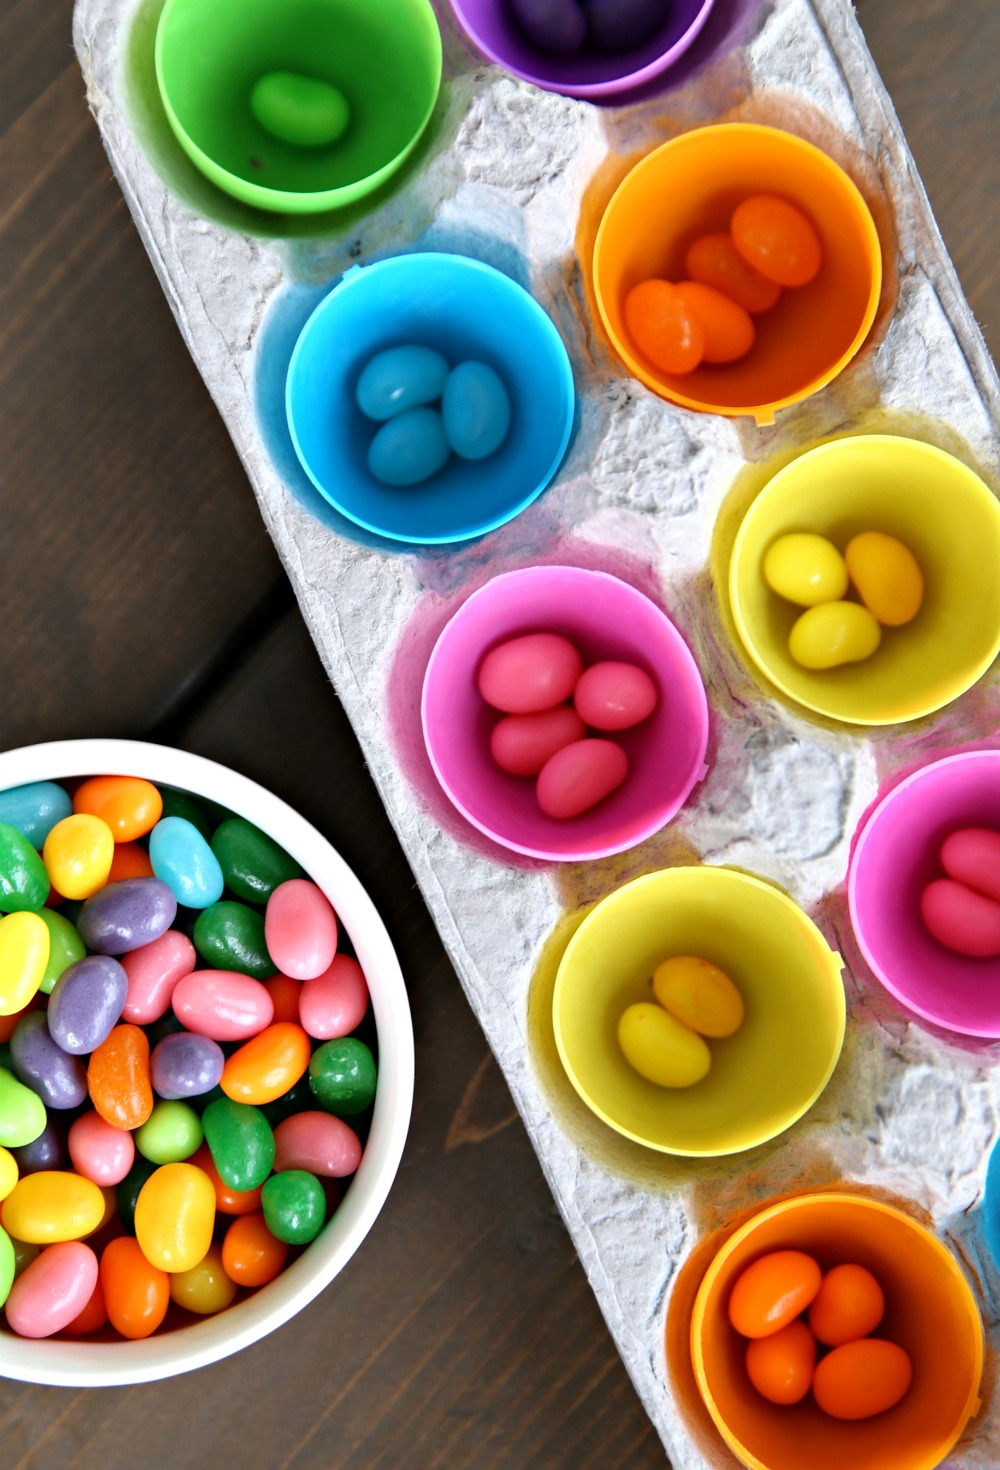 Sorting Jelly Beans Toddler Game